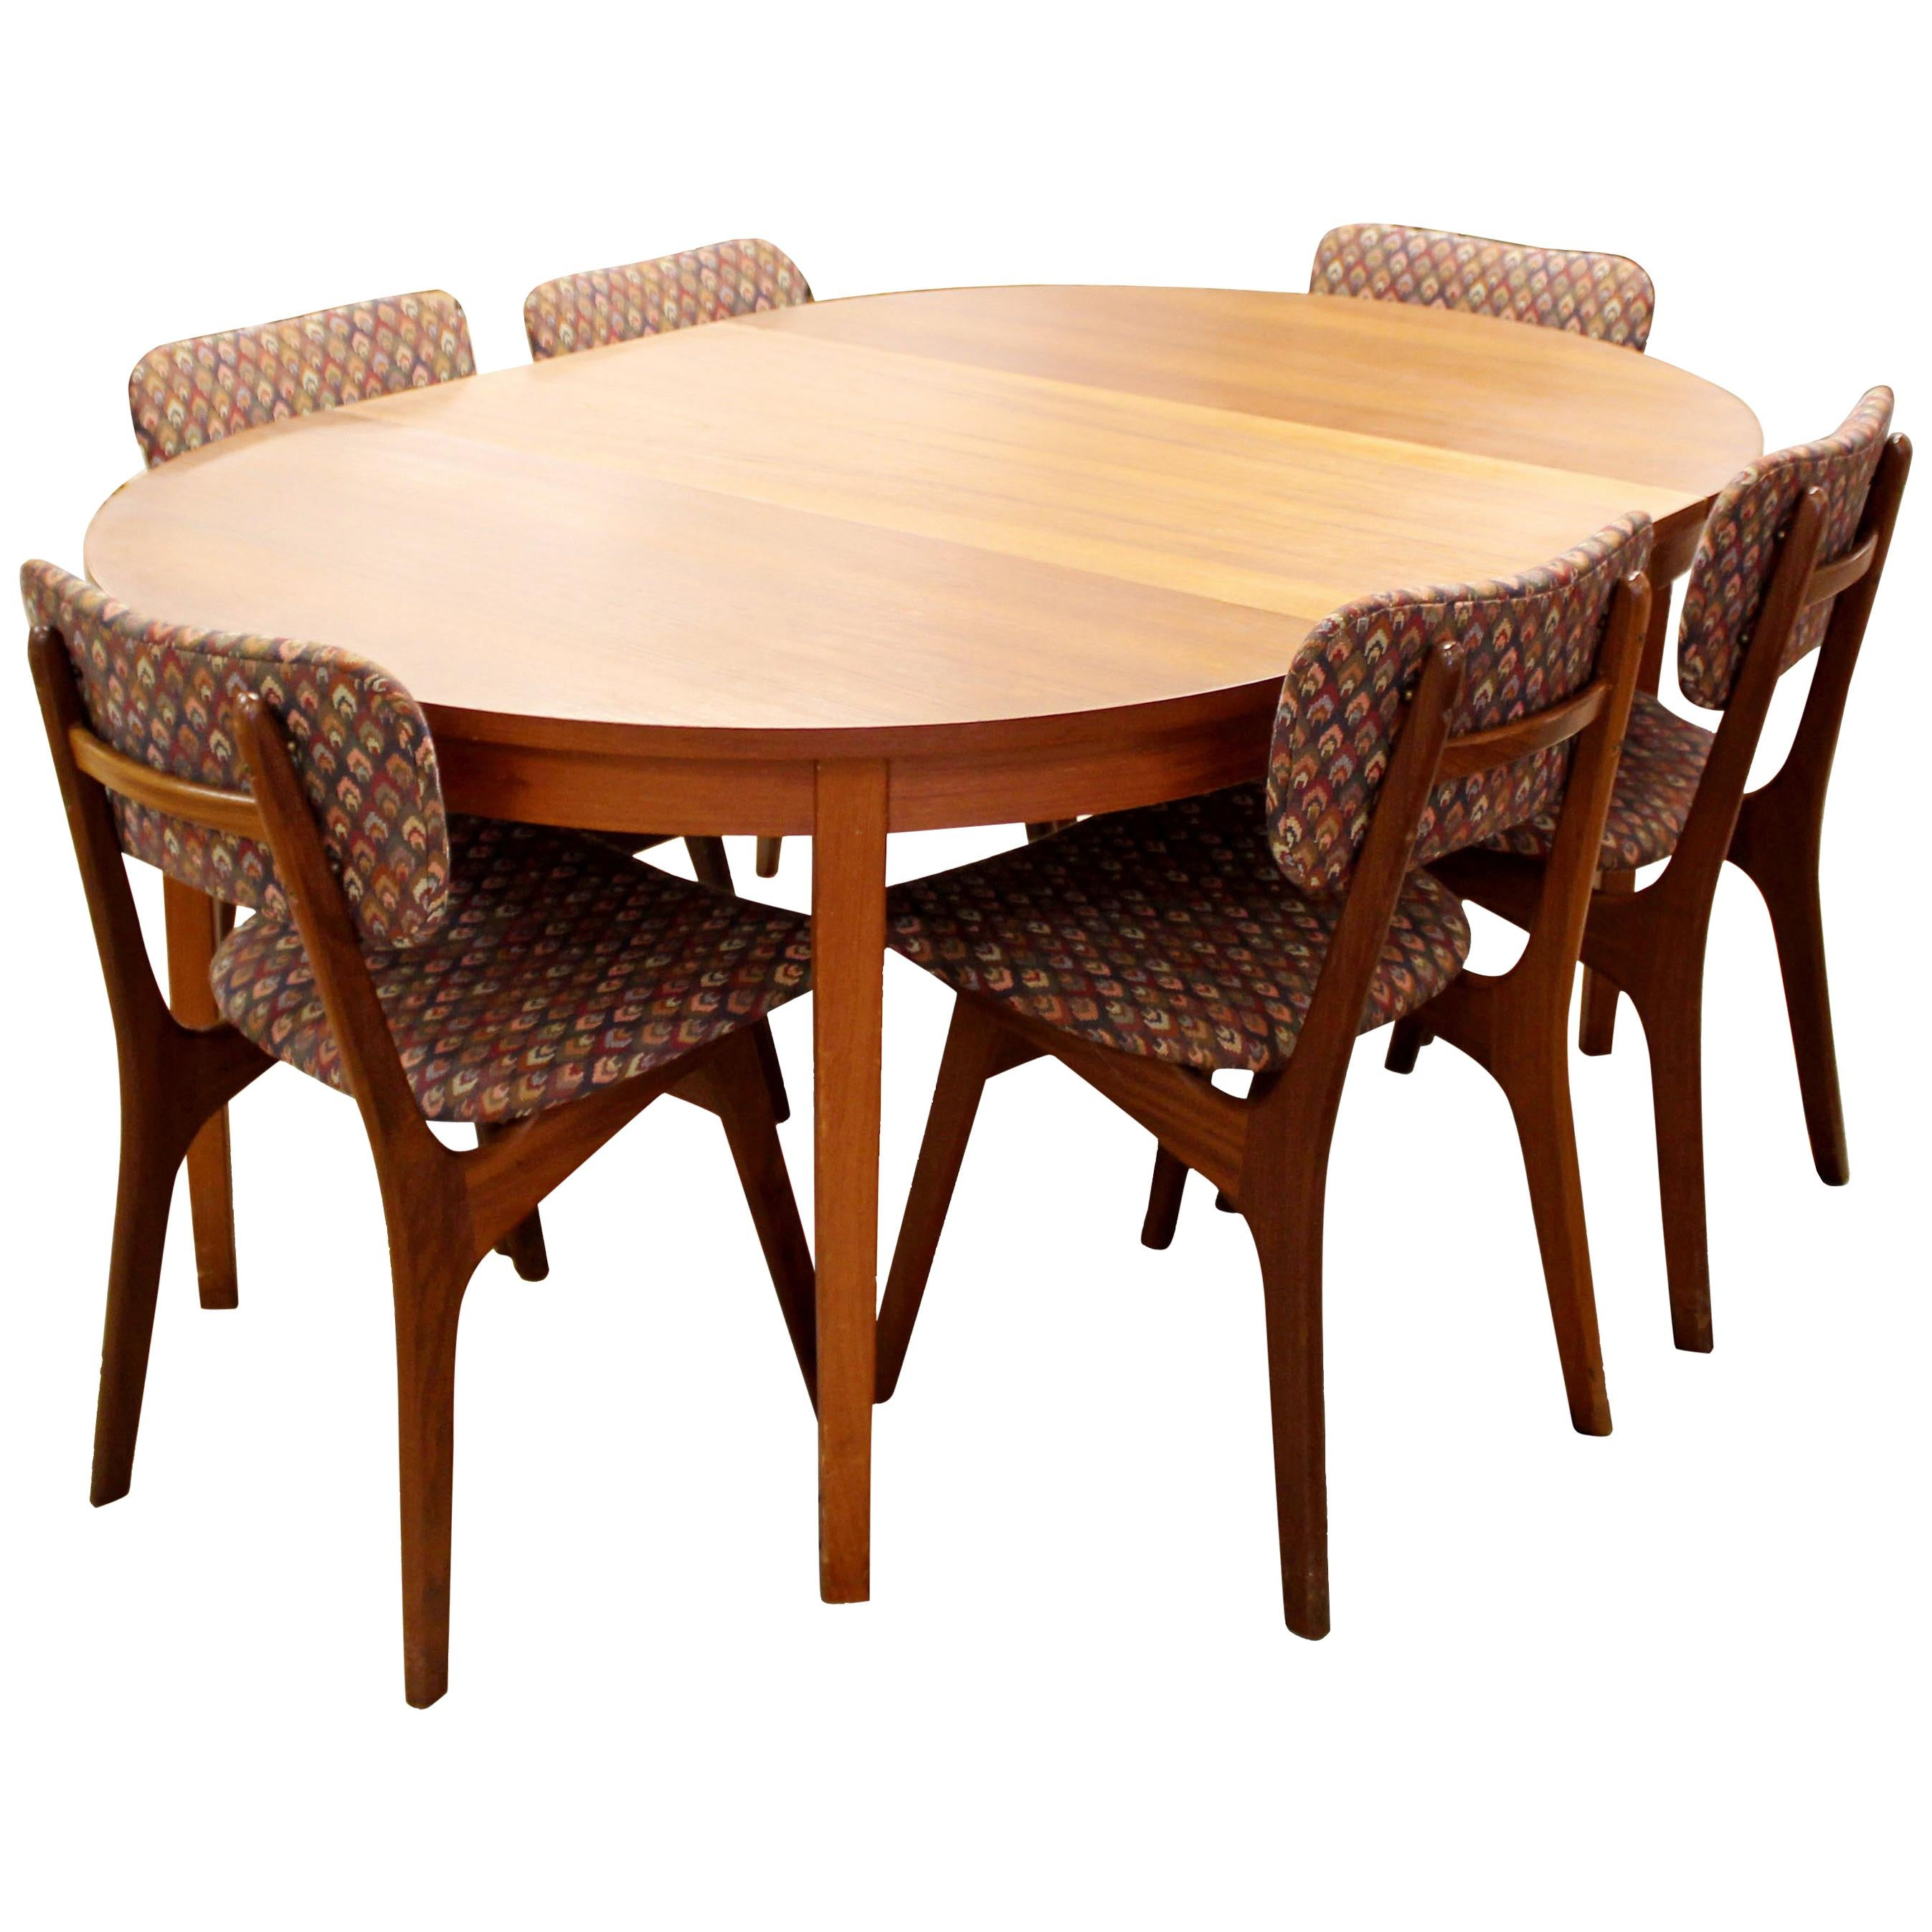 table and 6 chairs steel z chair mid century modern very large extendable danish dining arne hovmand olsen teak oval